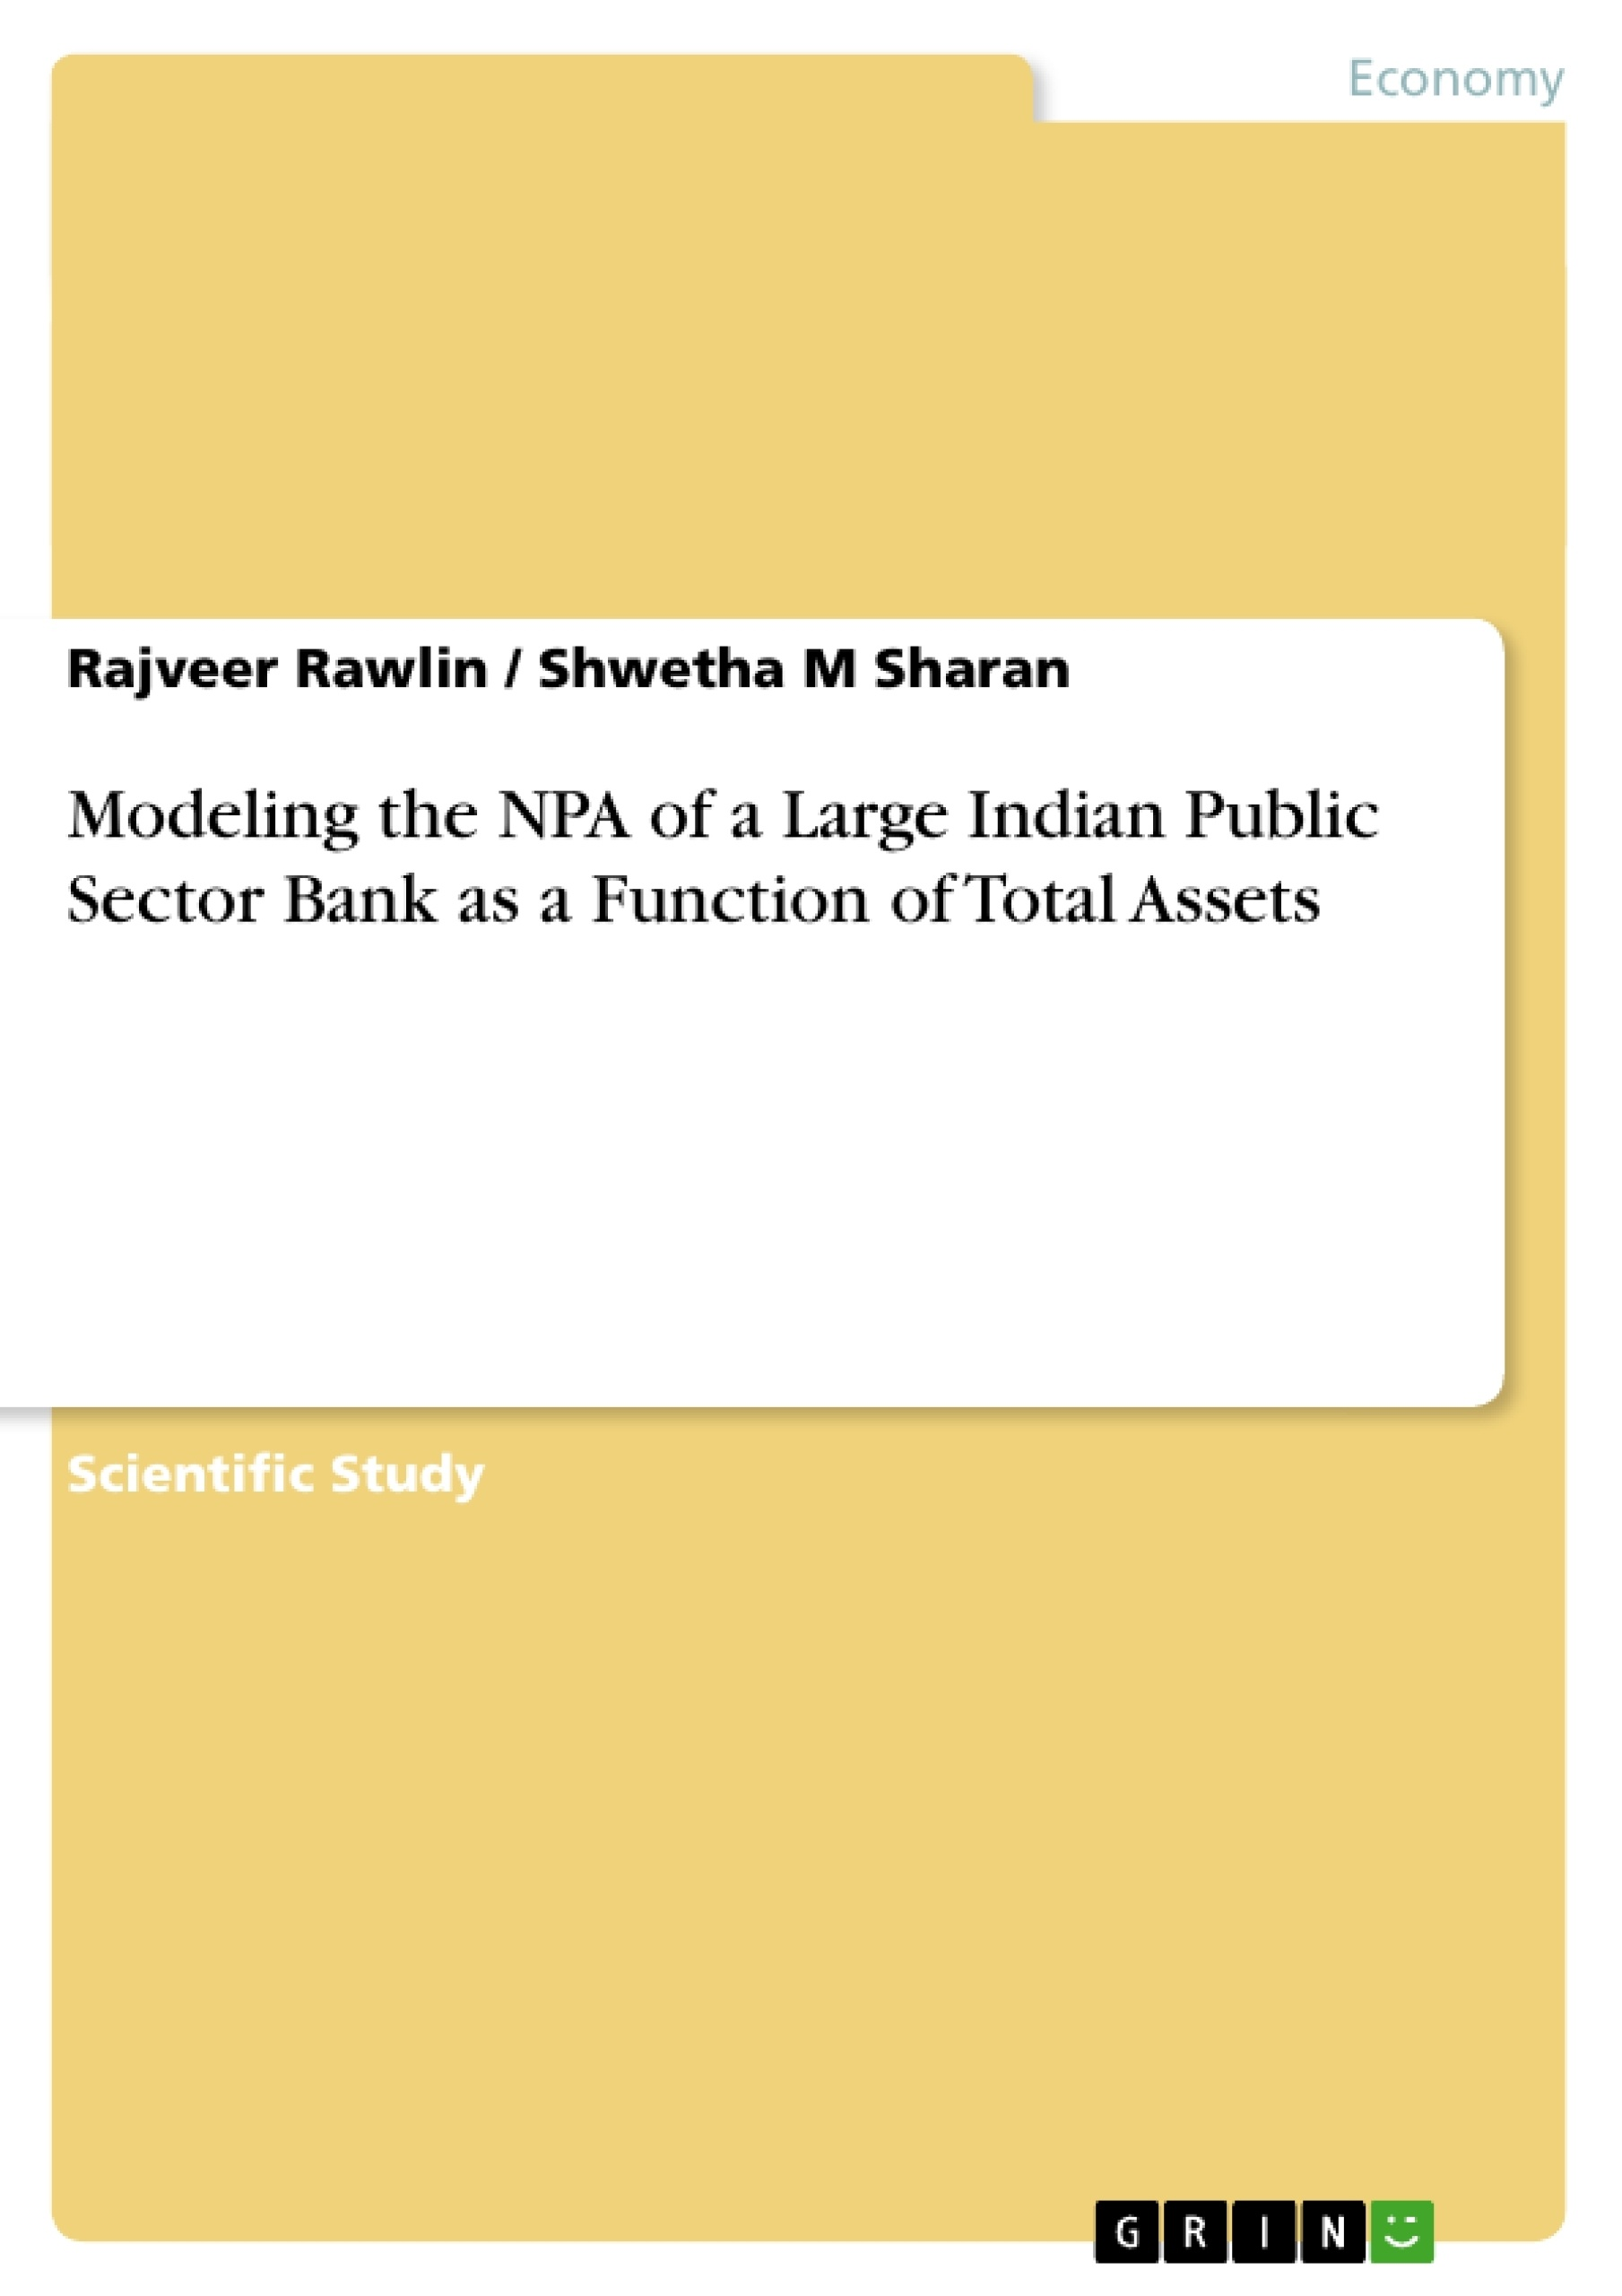 Title: Modeling the NPA of a Large Indian Public Sector Bank as a Function of Total Assets